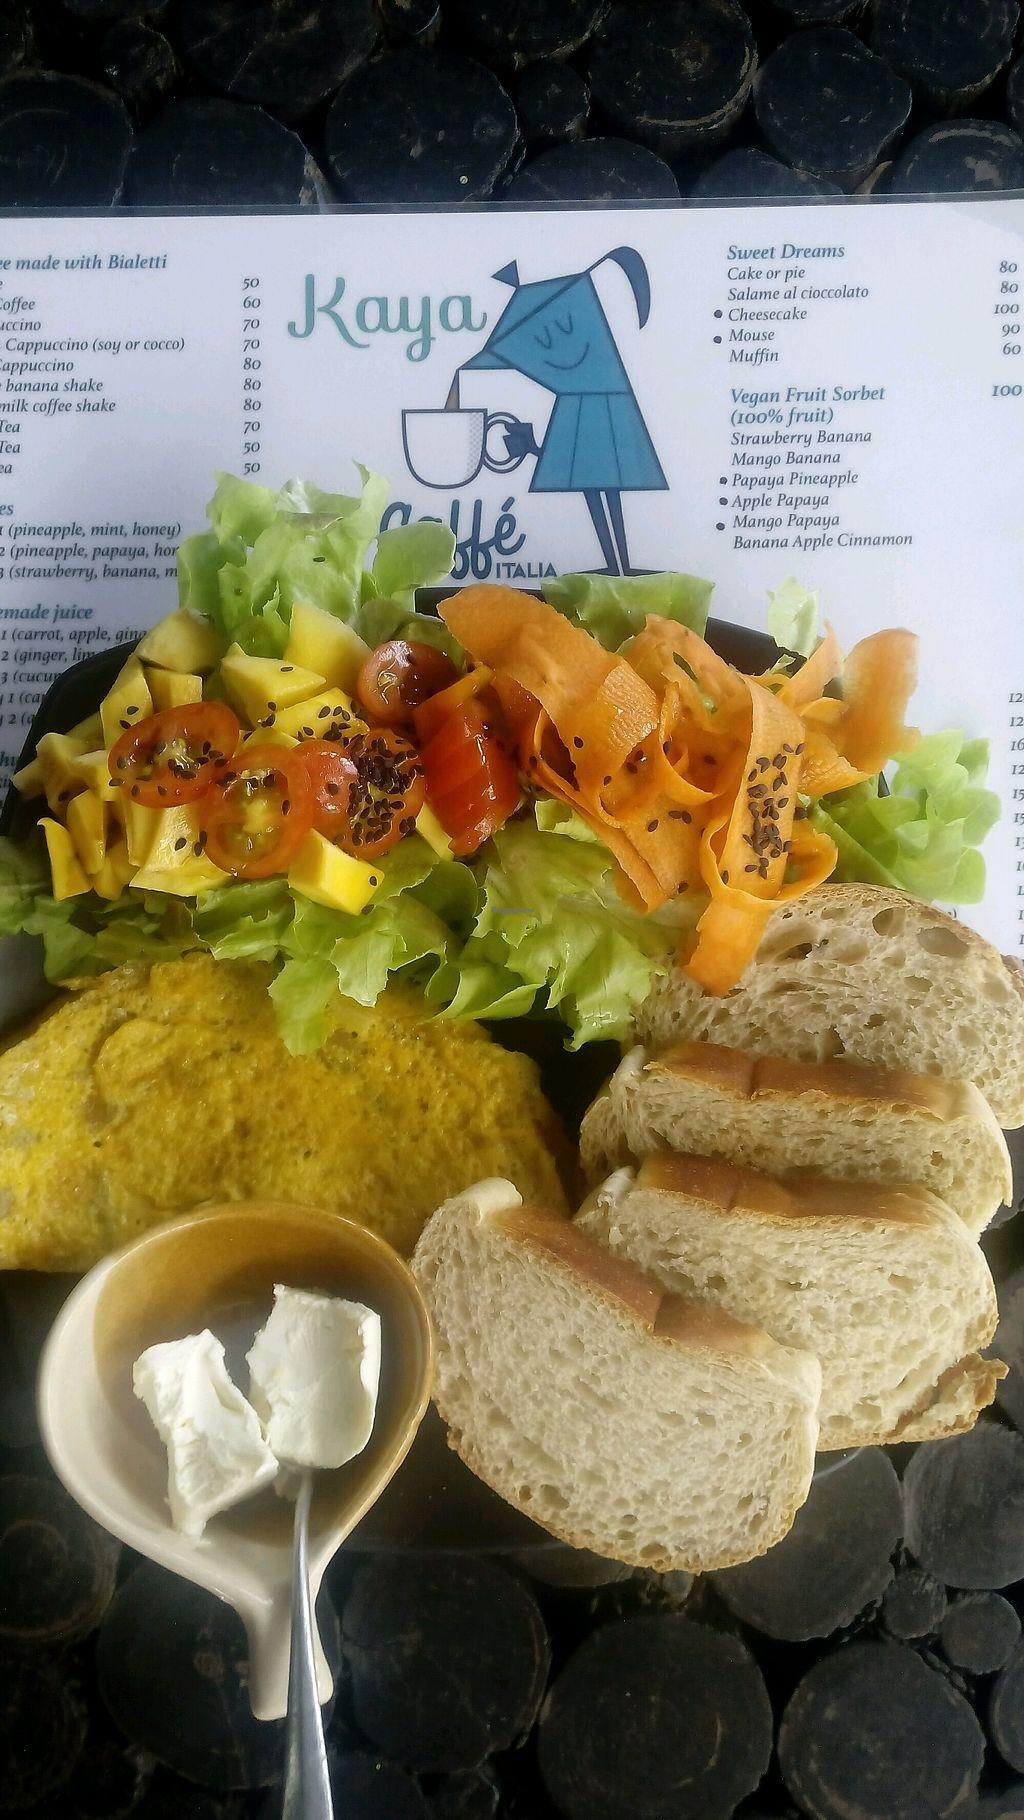 """Photo of Kaya Caffe  by <a href=""""/members/profile/FrancescaBonello"""">FrancescaBonello</a> <br/>Veggy omelette  <br/> August 23, 2017  - <a href='/contact/abuse/image/98208/296145'>Report</a>"""